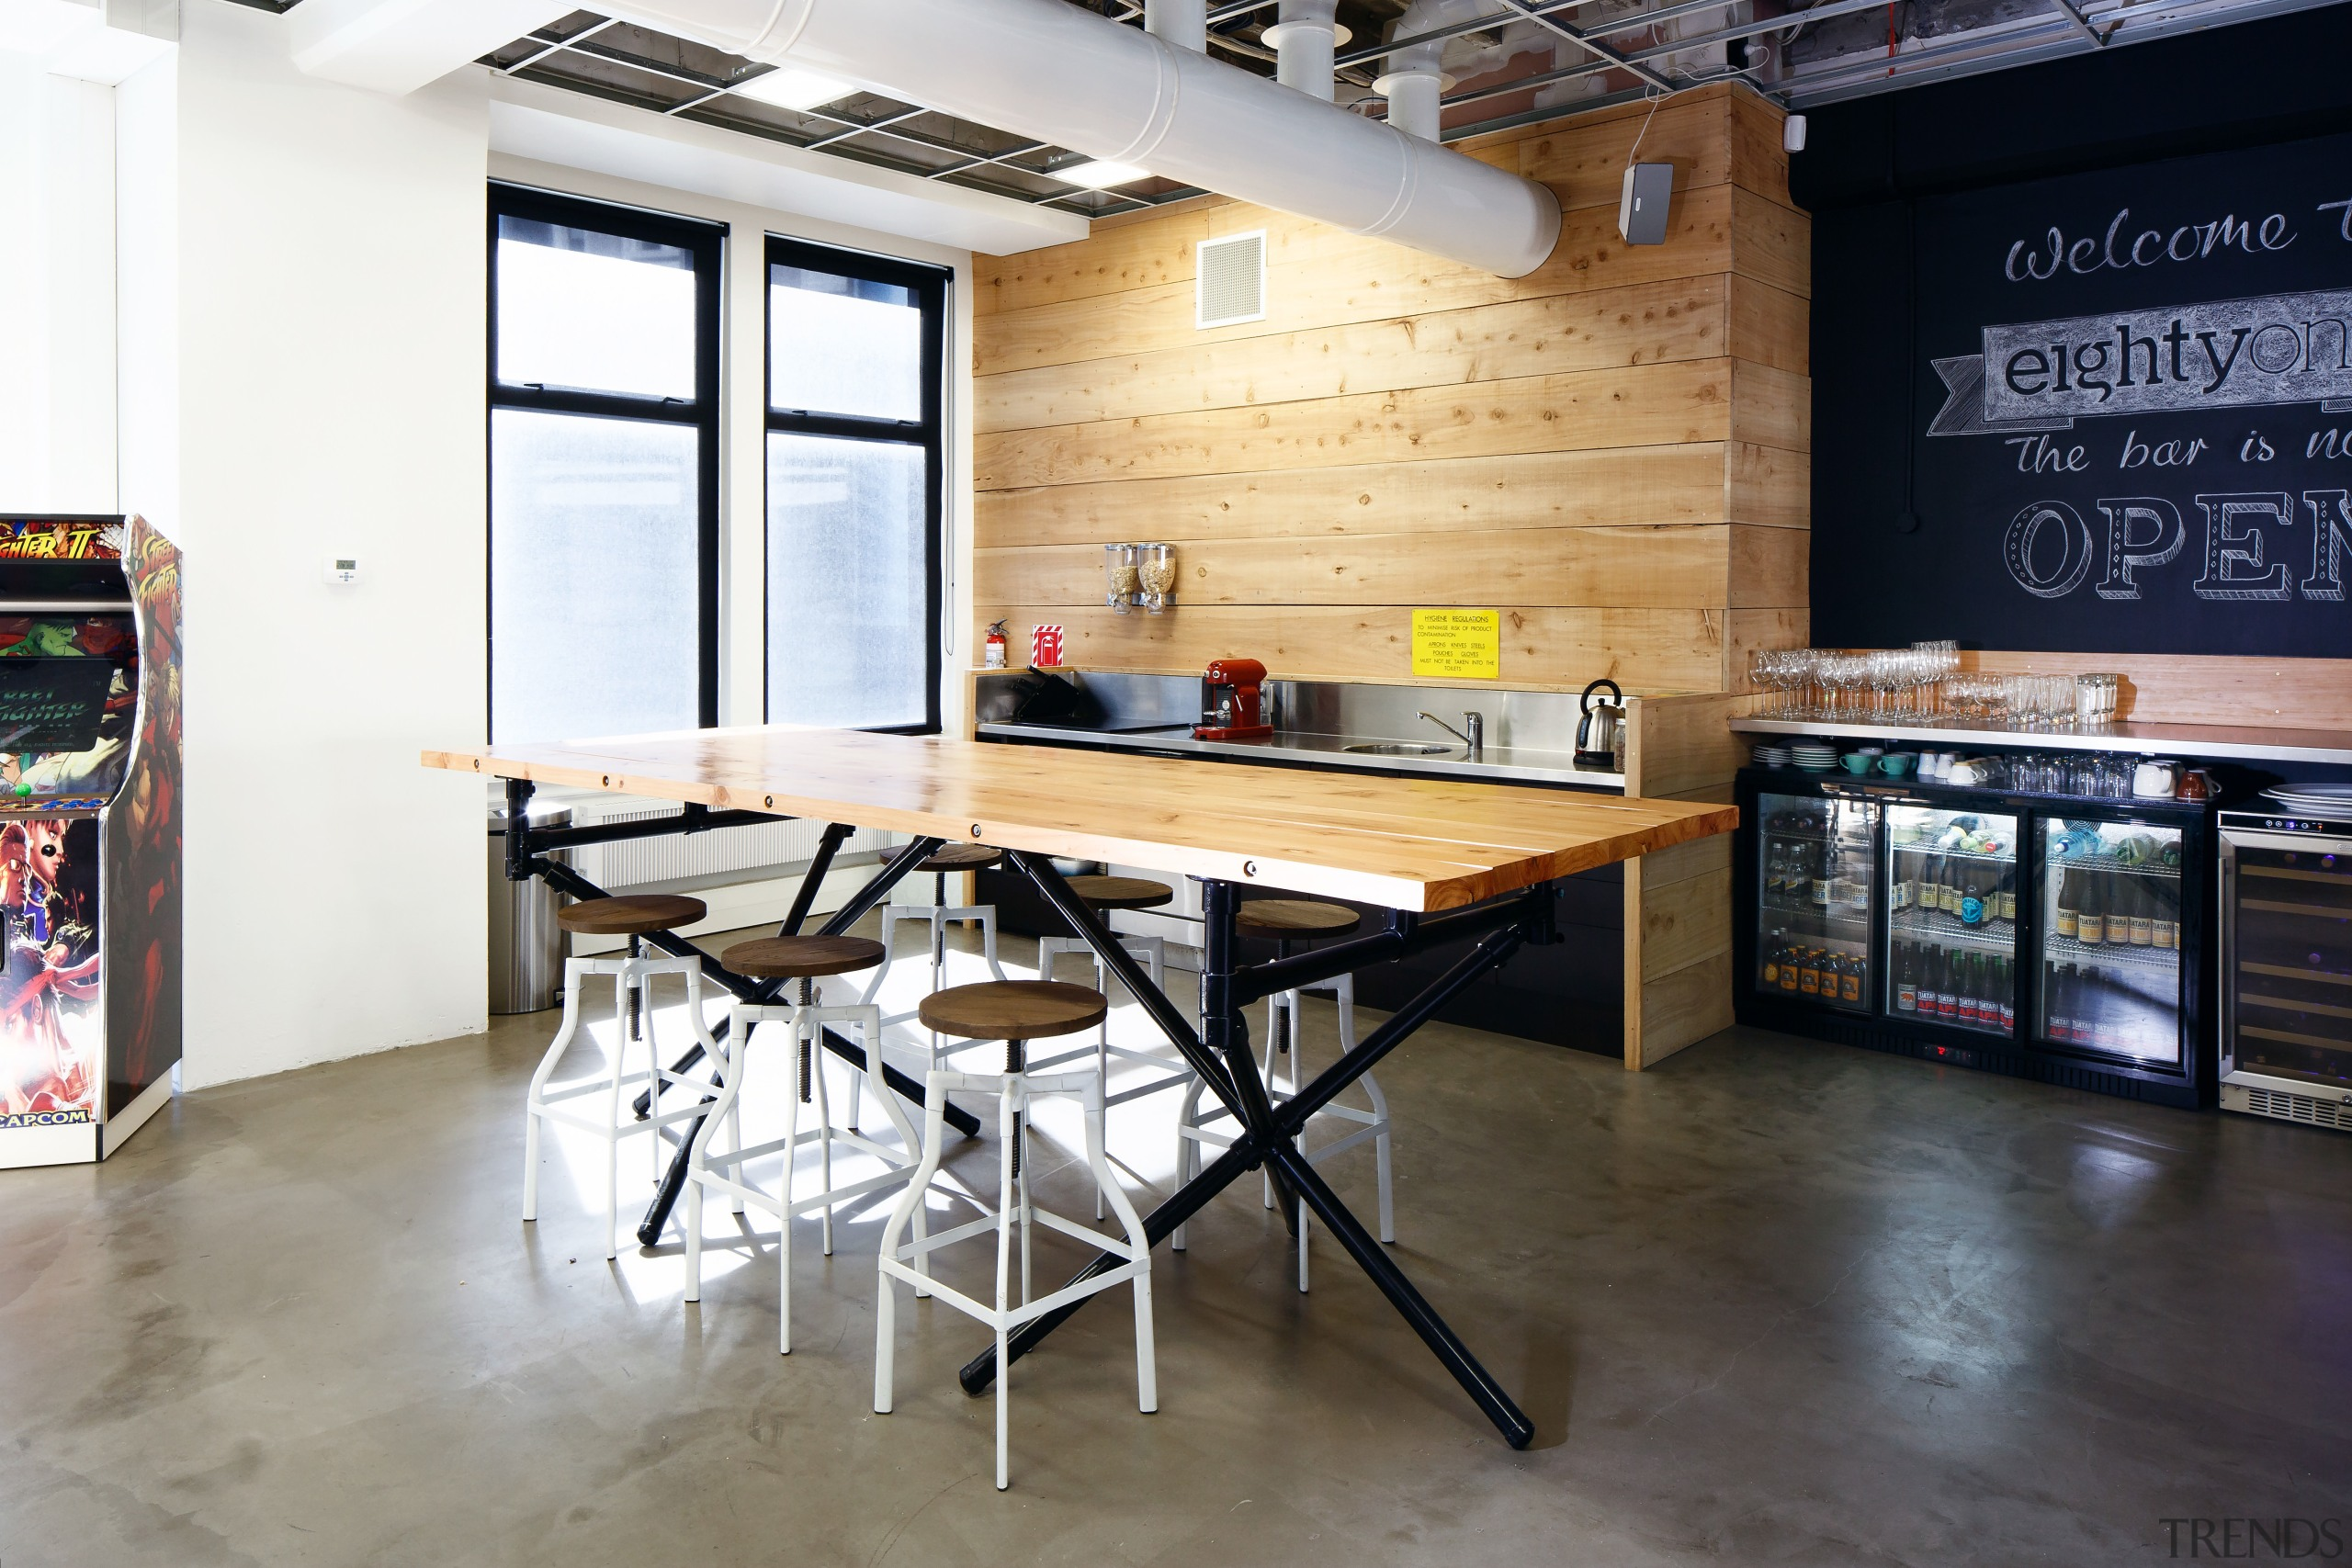 The wood and stainless steel kitchen and adjacent countertop, flooring, furniture, interior design, kitchen, loft, table, white, black